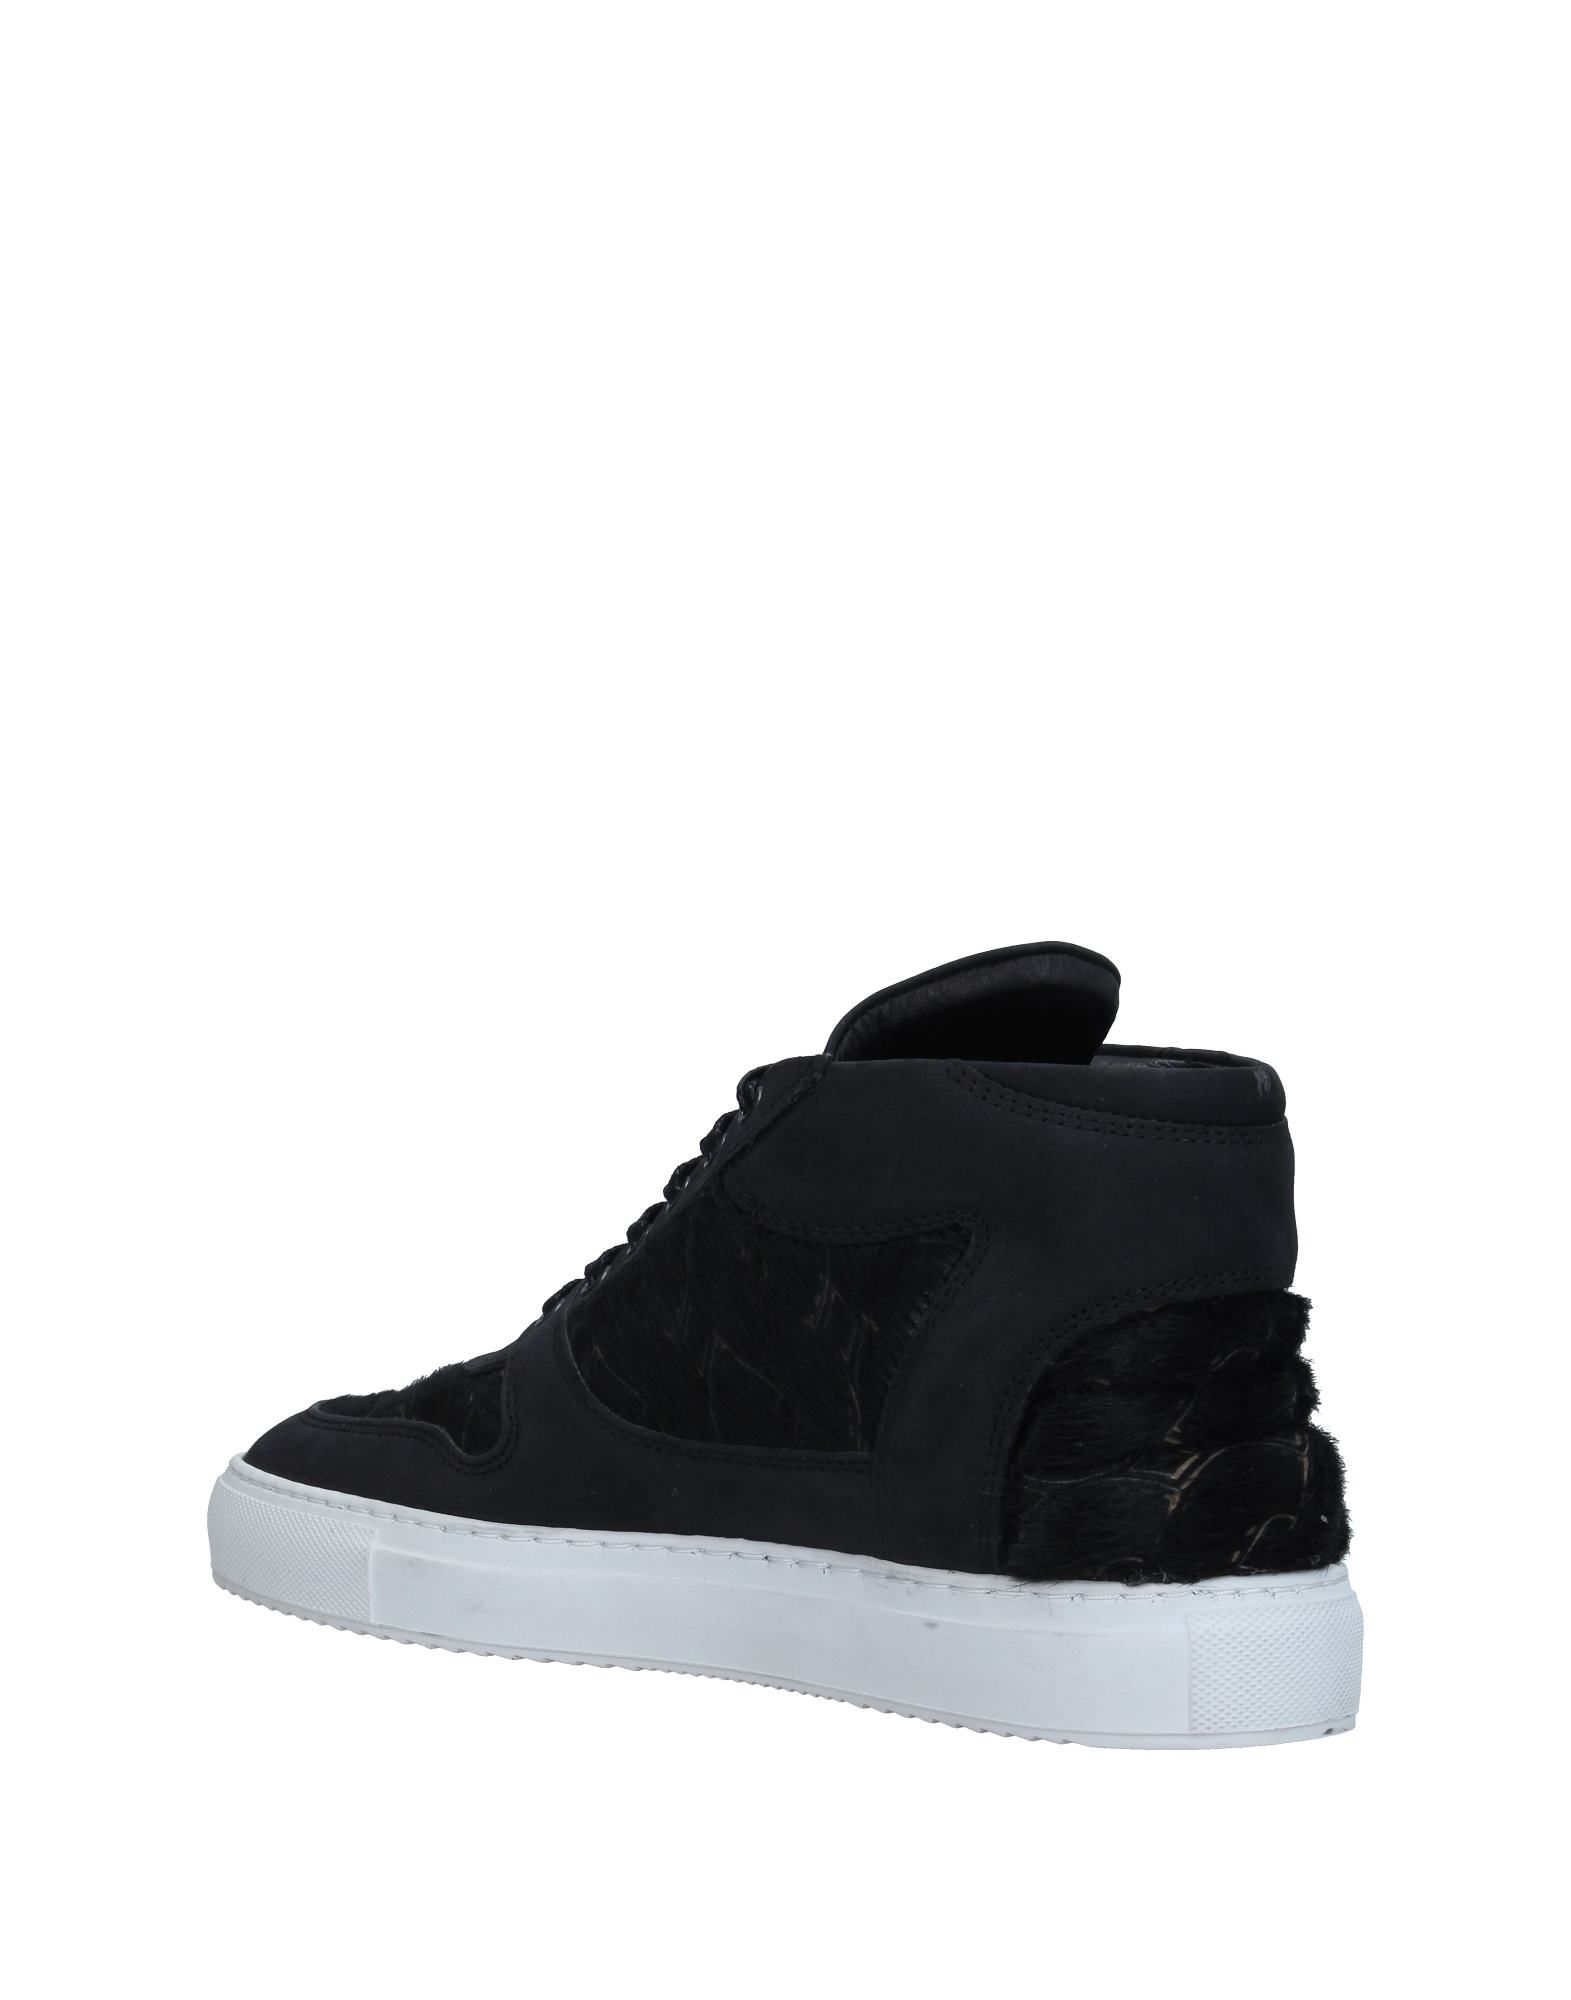 Sneakers Filling Pieces Femme - Sneakers Filling Pieces sur